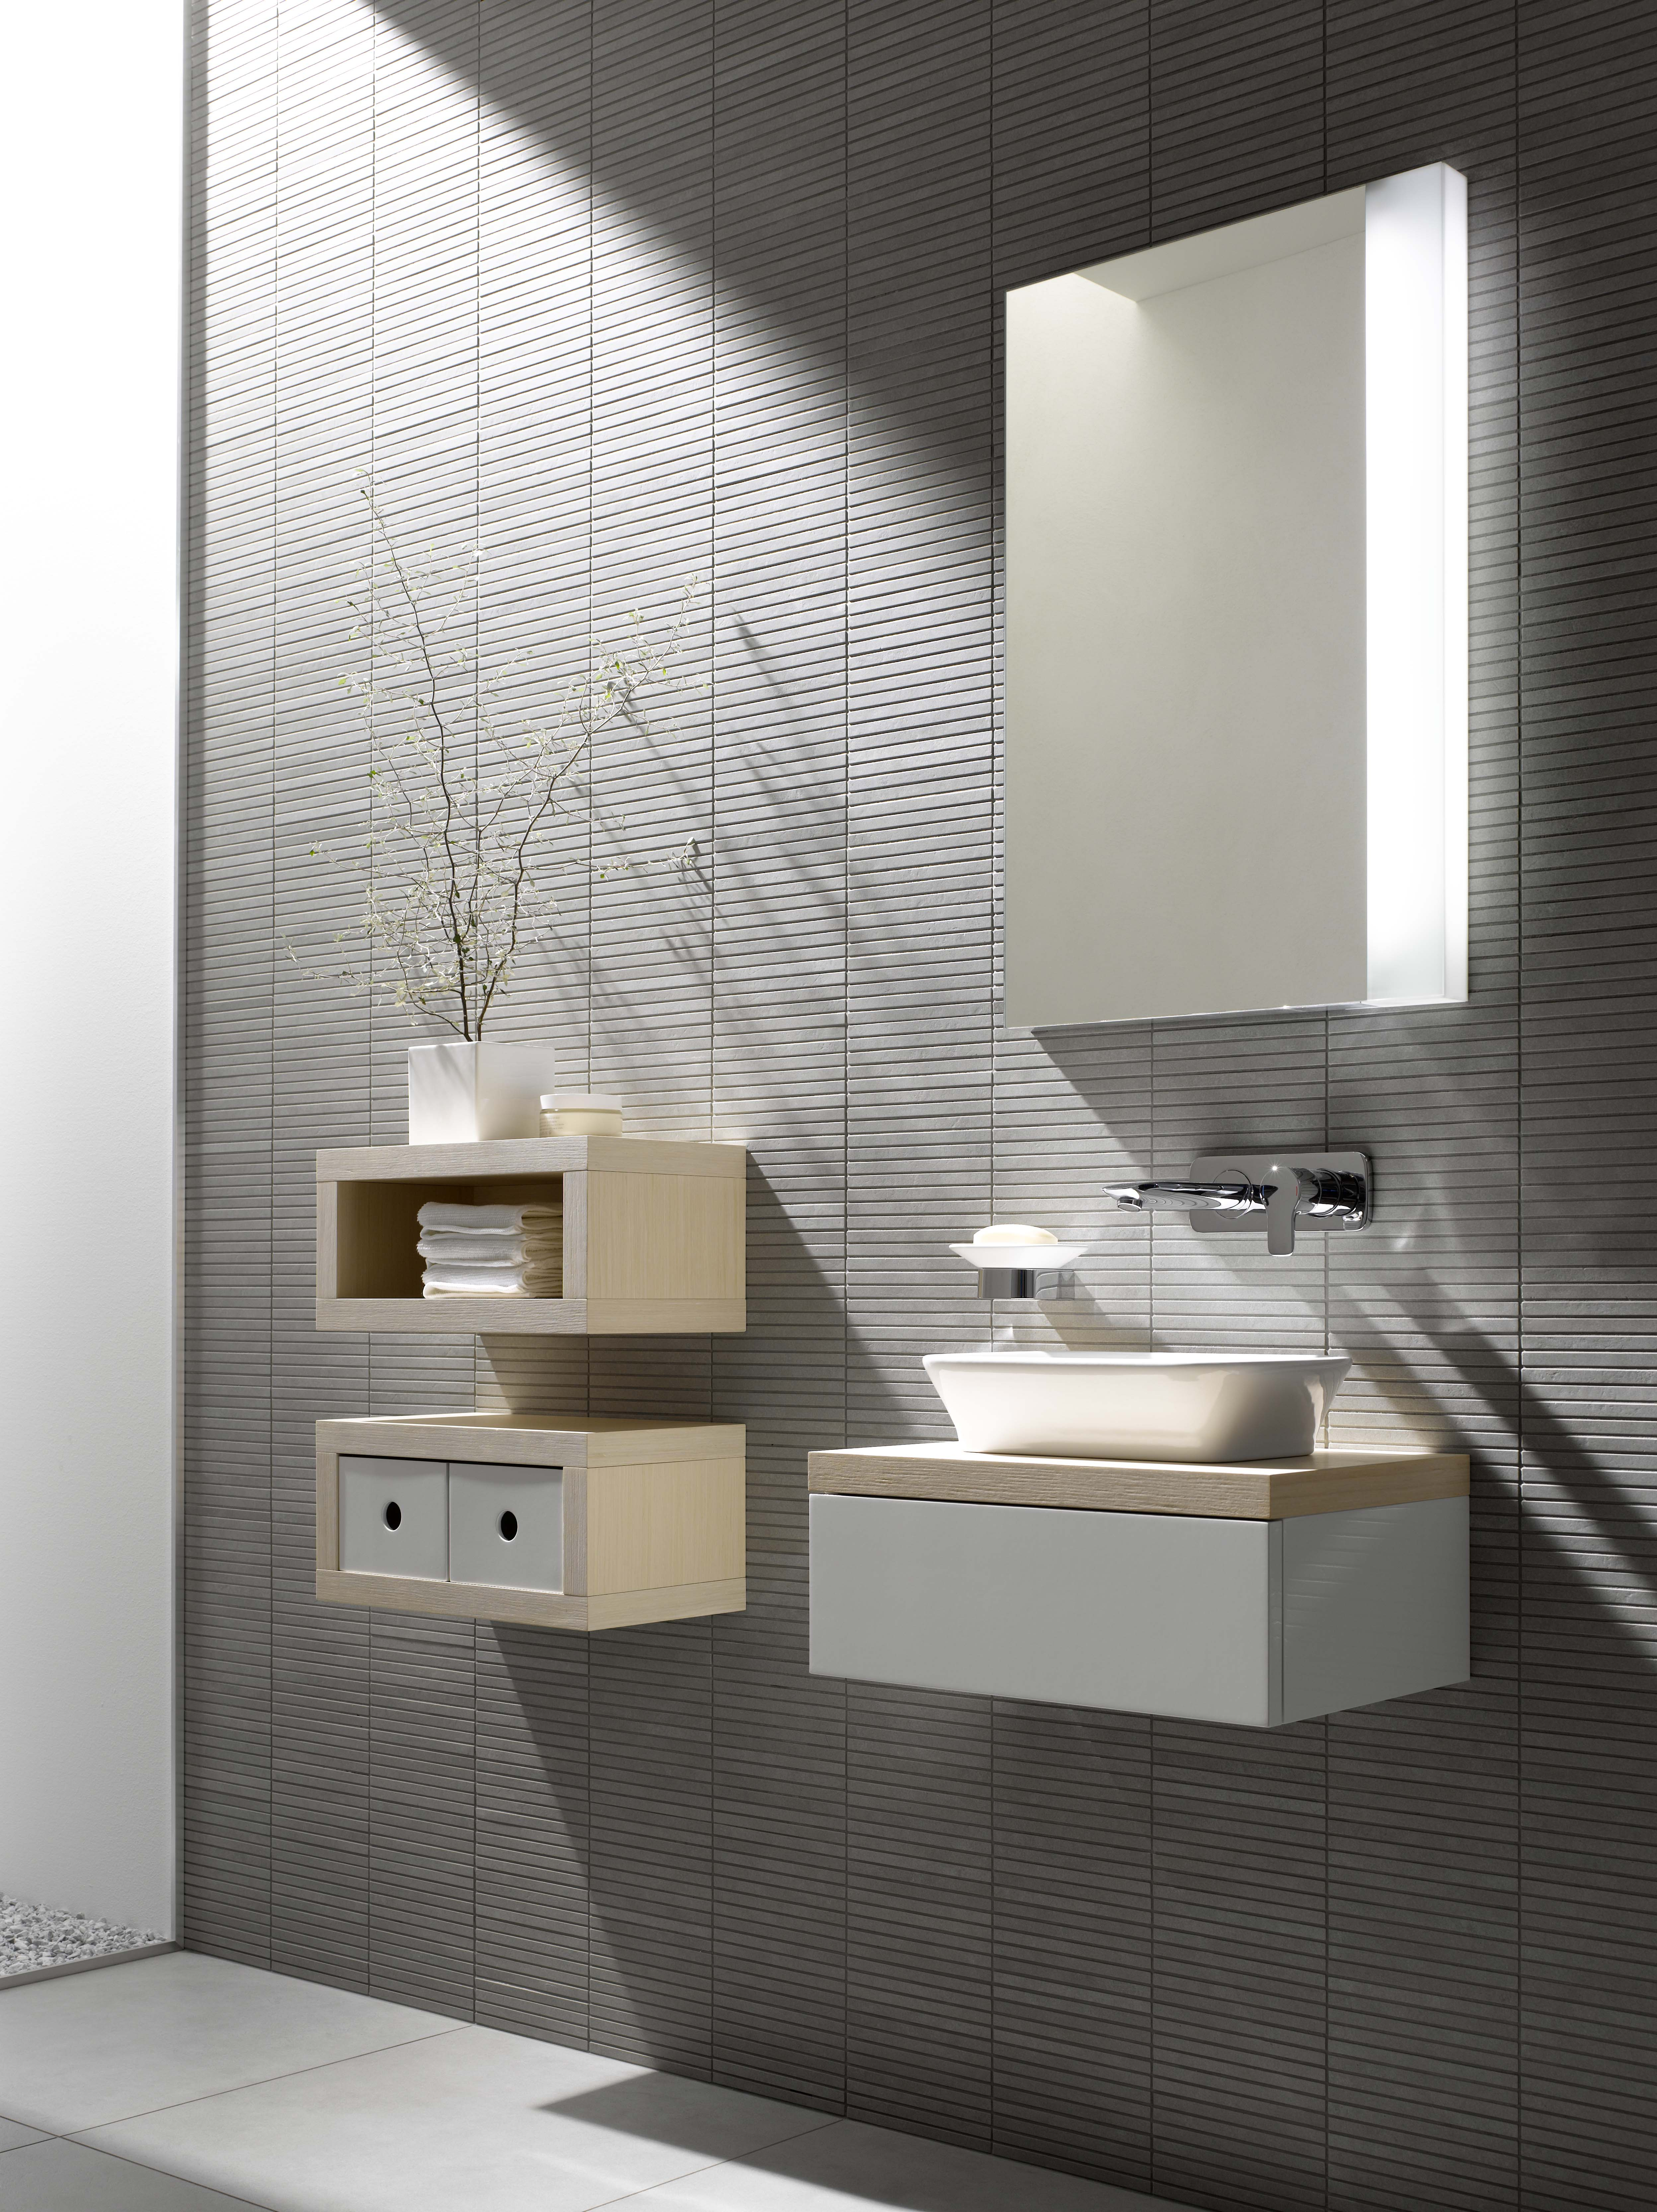 Modular Home Bath Suite By Toto - Toto bathroom